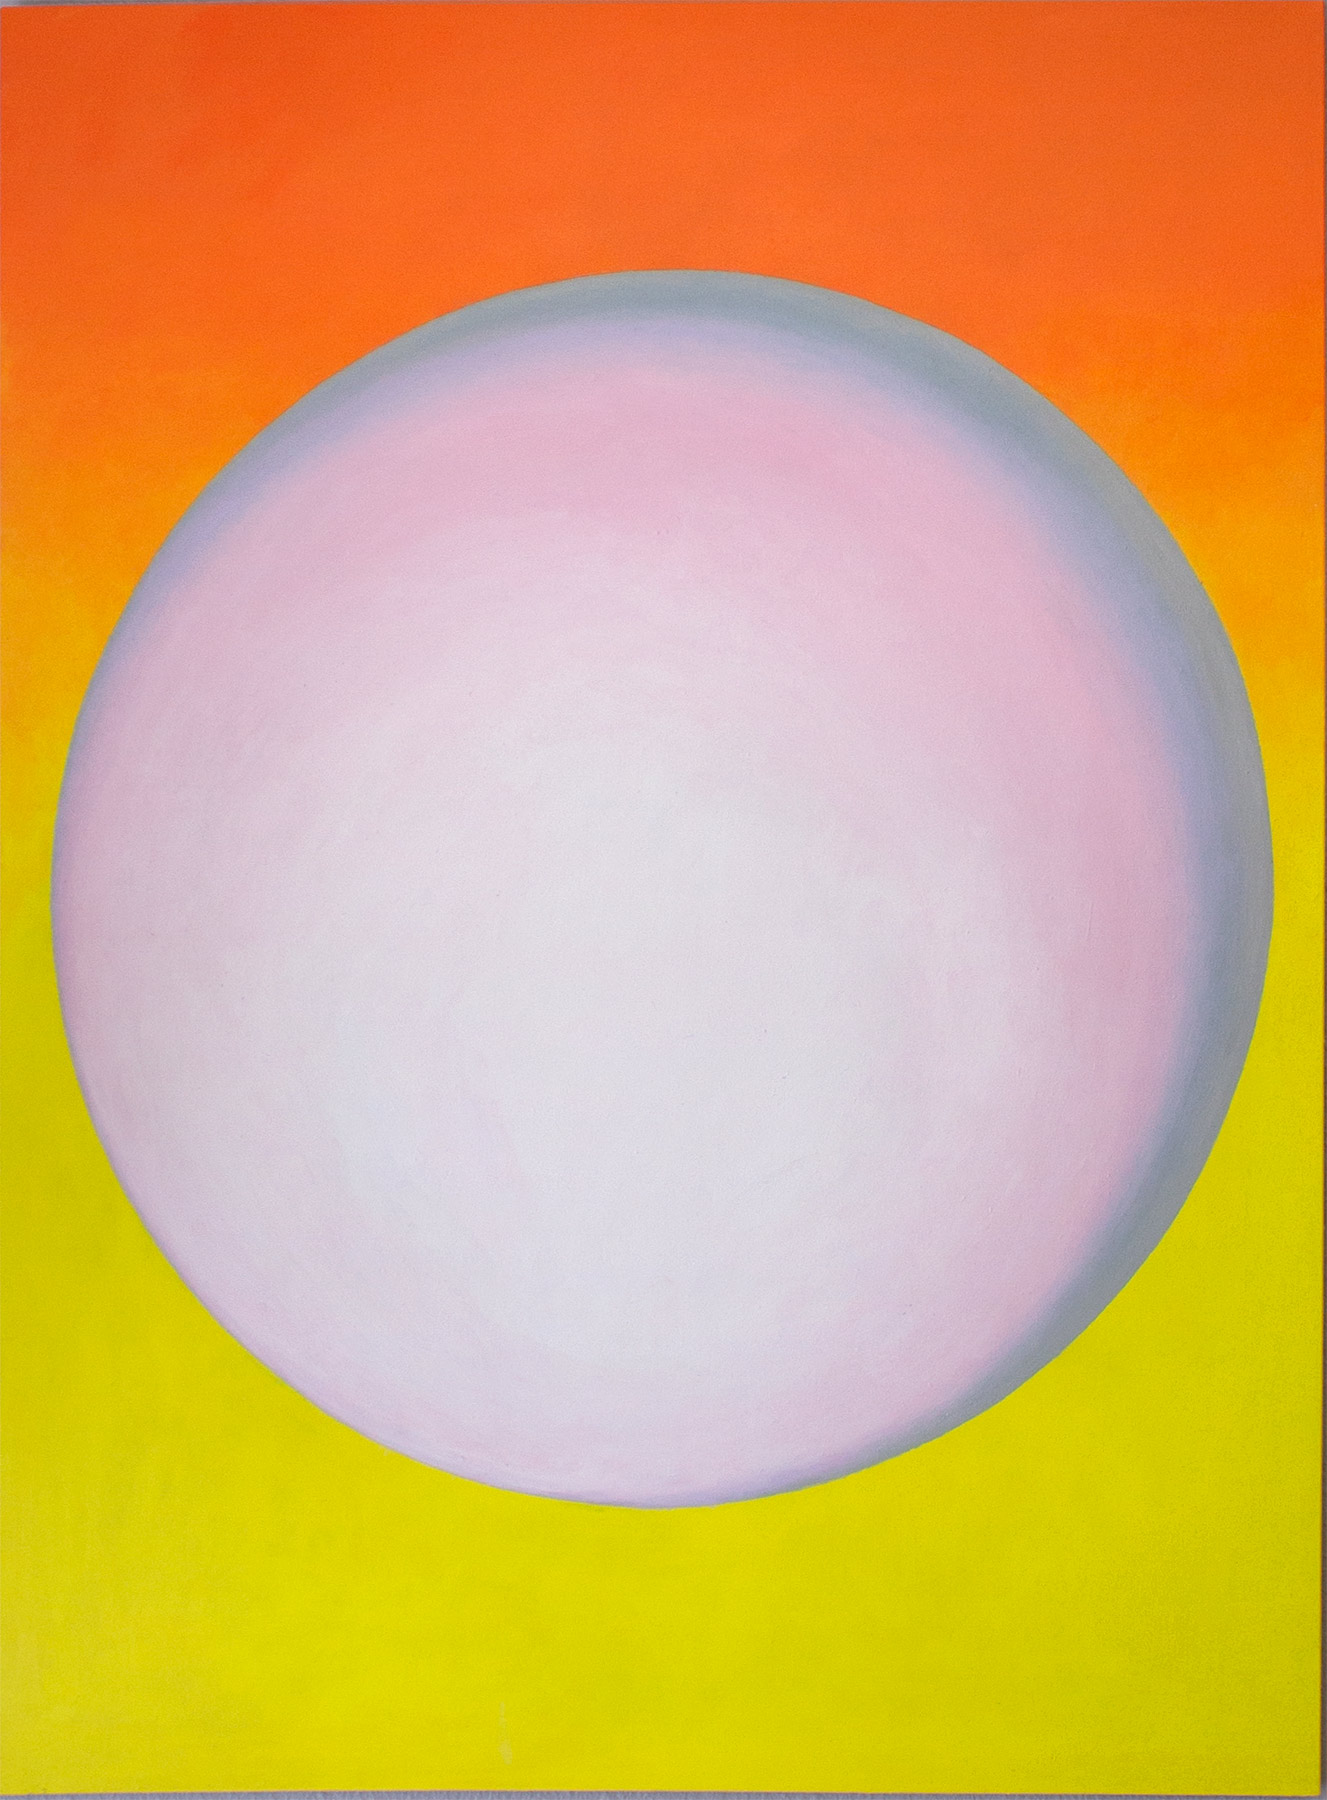 paintings, abstract, aesthetic, colorful, geometric, graphical, minimalistic, pop, architecture, technology, grey, orange, pink, white, yellow, acrylic, cotton-canvas, abstract-forms, beautiful, conceptual, contemporary-art, danish, design, interior, interior-design, modern, modern-art, nordic, pop-art, scandinavien, Buy original high quality art. Paintings, drawings, limited edition prints & posters by talented artists.